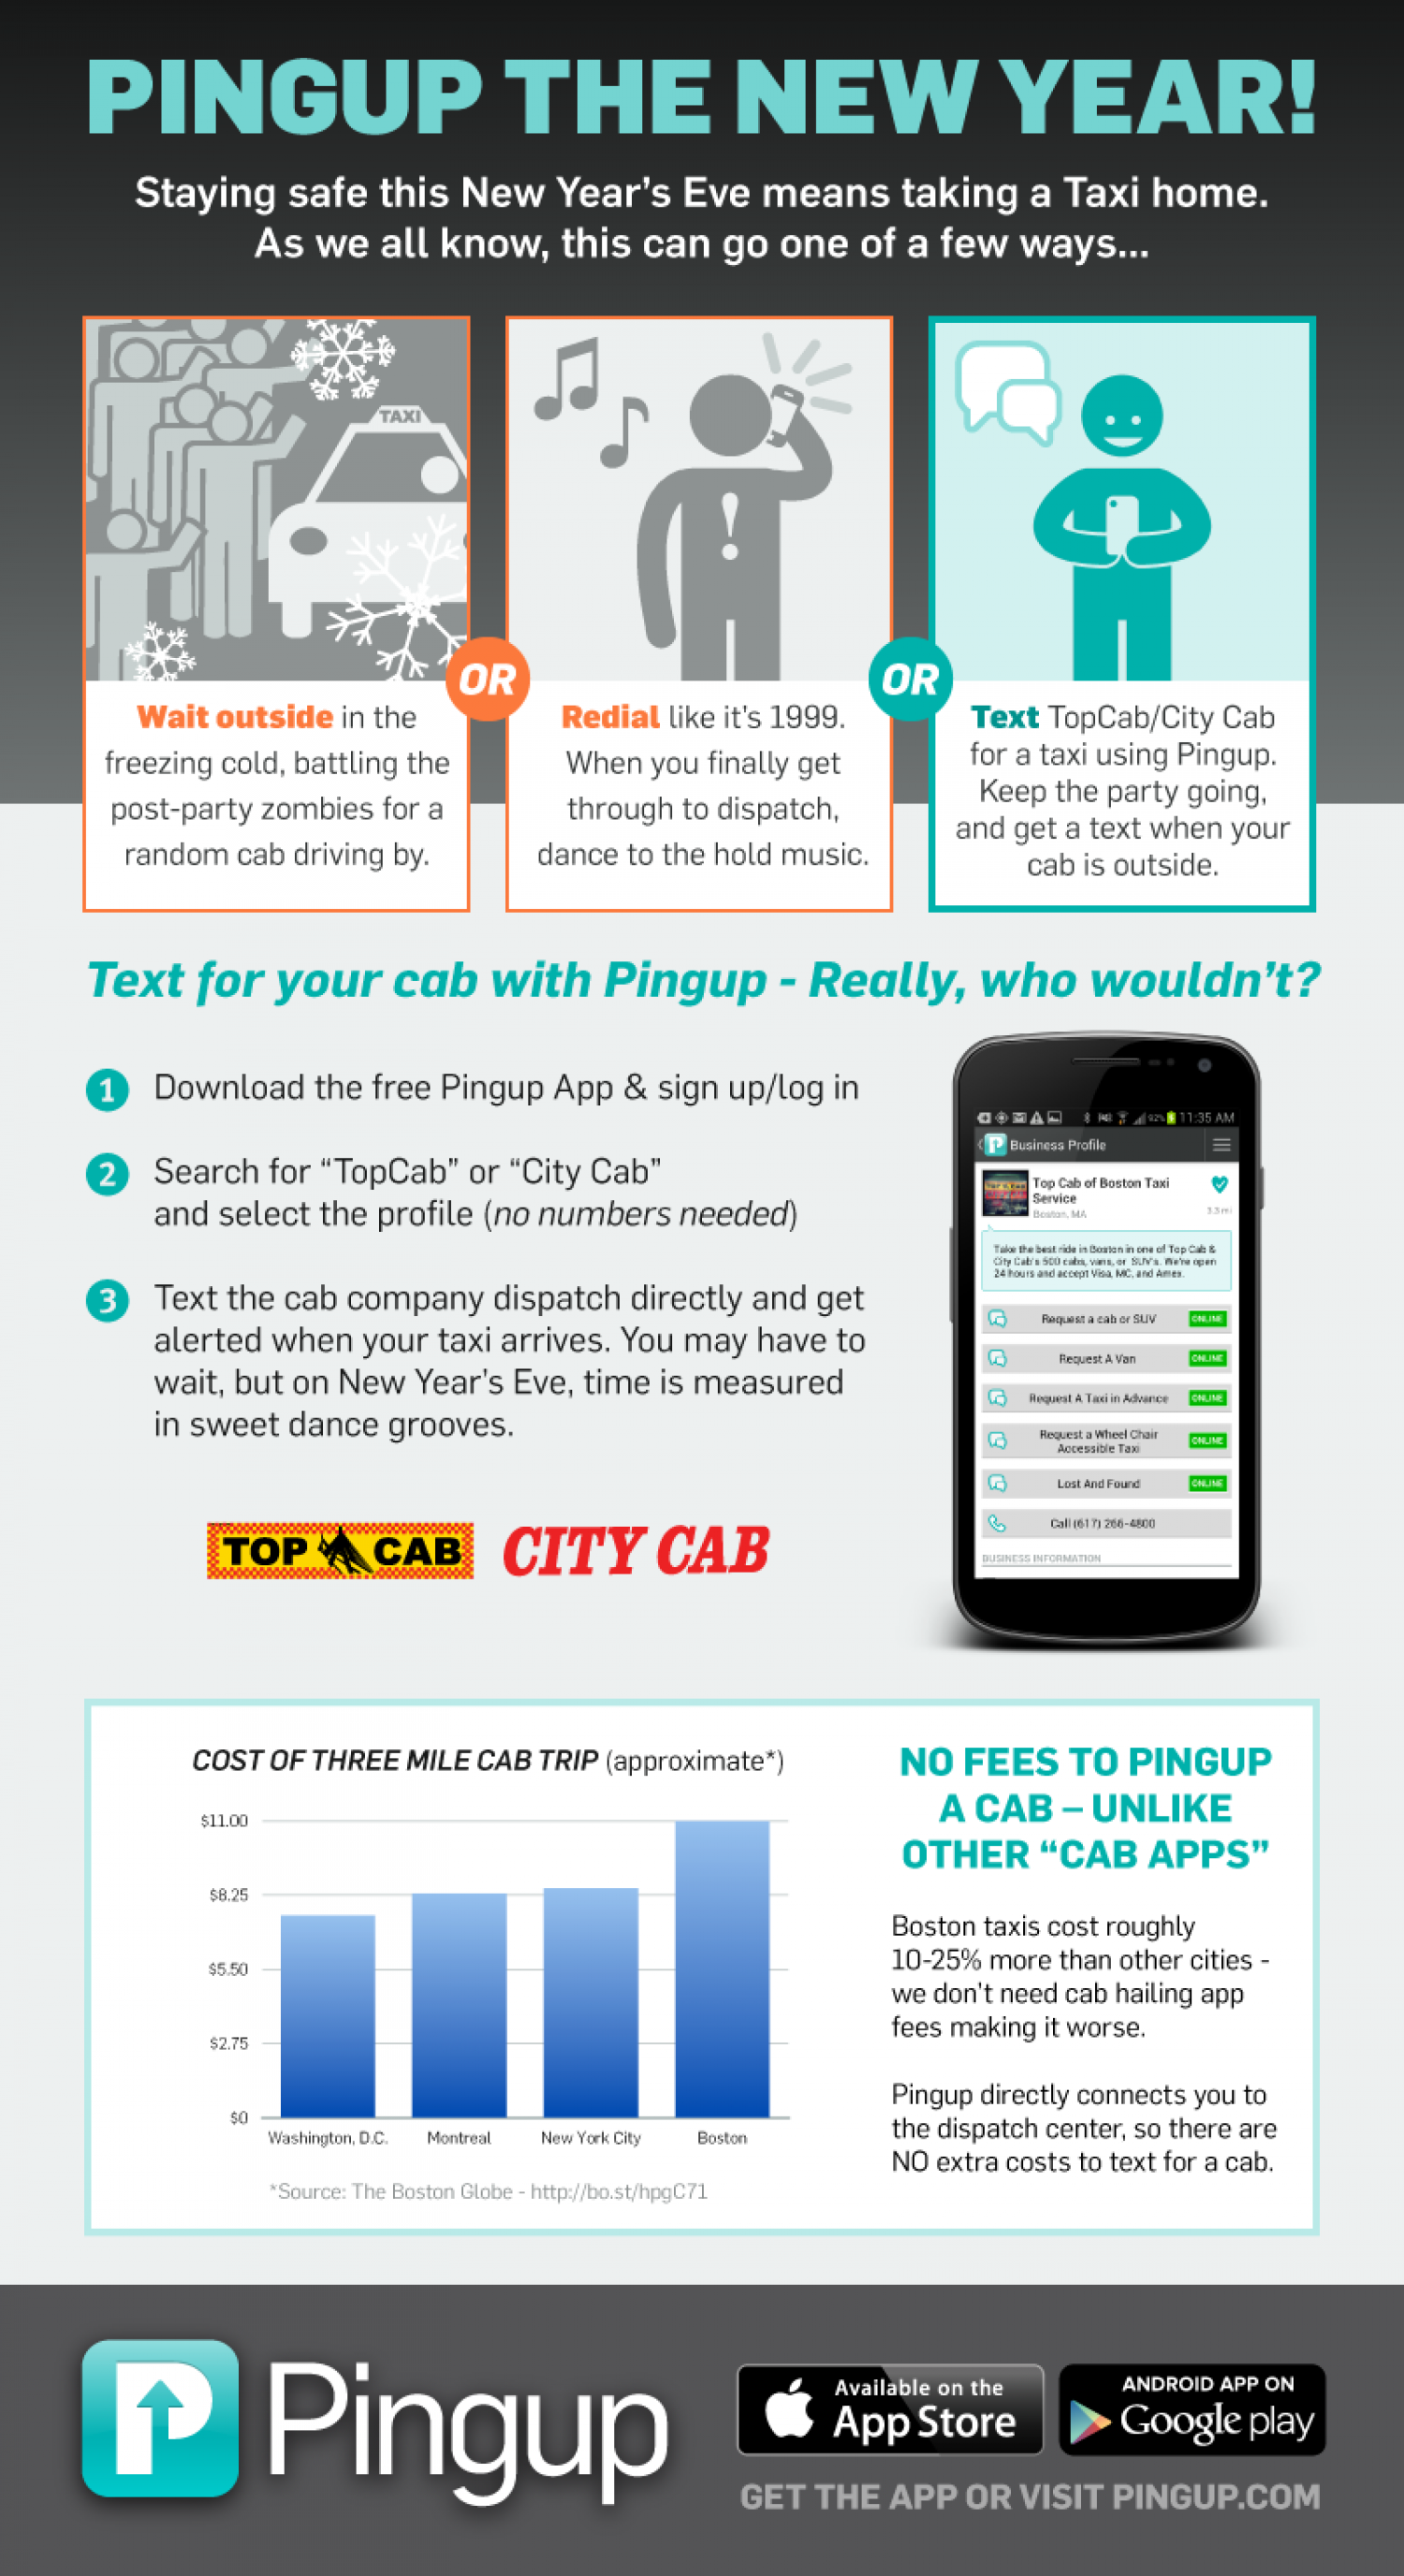 Pingup like it's 2013 on New Year's Eve! Infographic